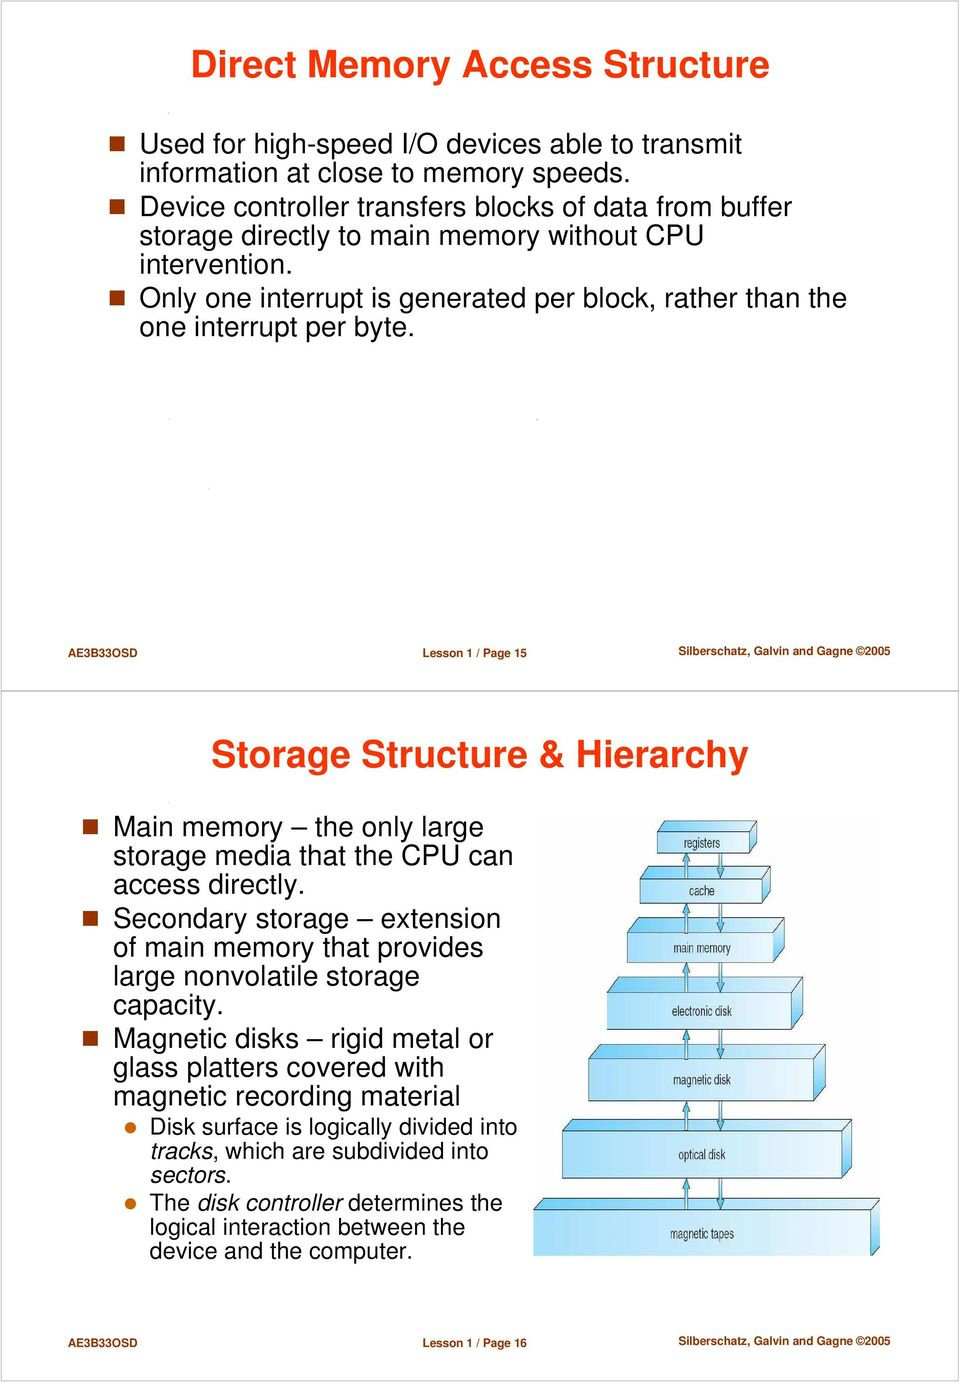 AE3B33OSD Lesson 1 / Page 15 Storage Structure & Hierarchy Main memory the only large storage media that the CPU can access directly.